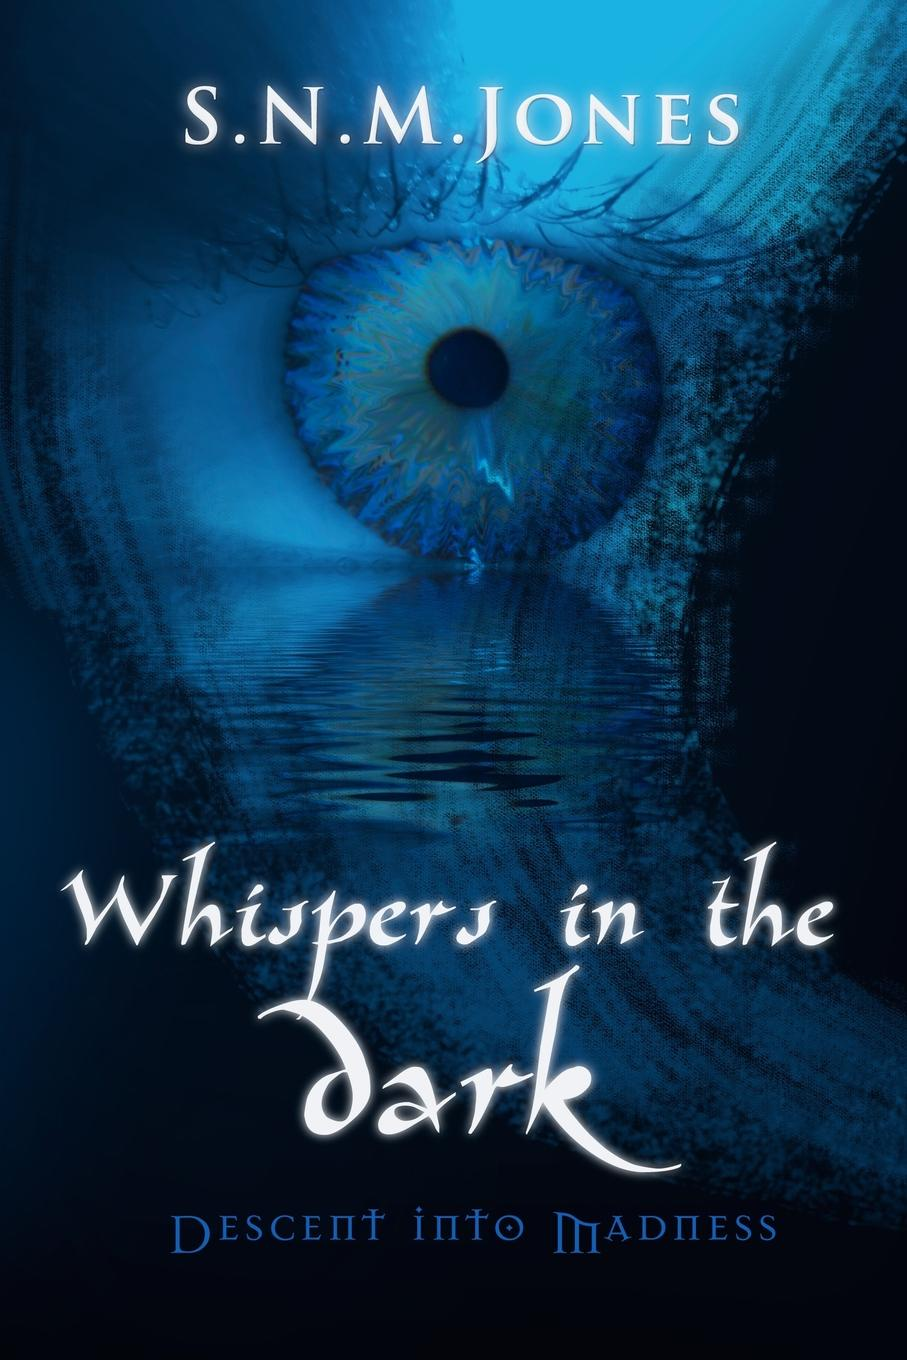 S.N.M. Jones Whispers in the Dark. Descent into Madness the one that got away